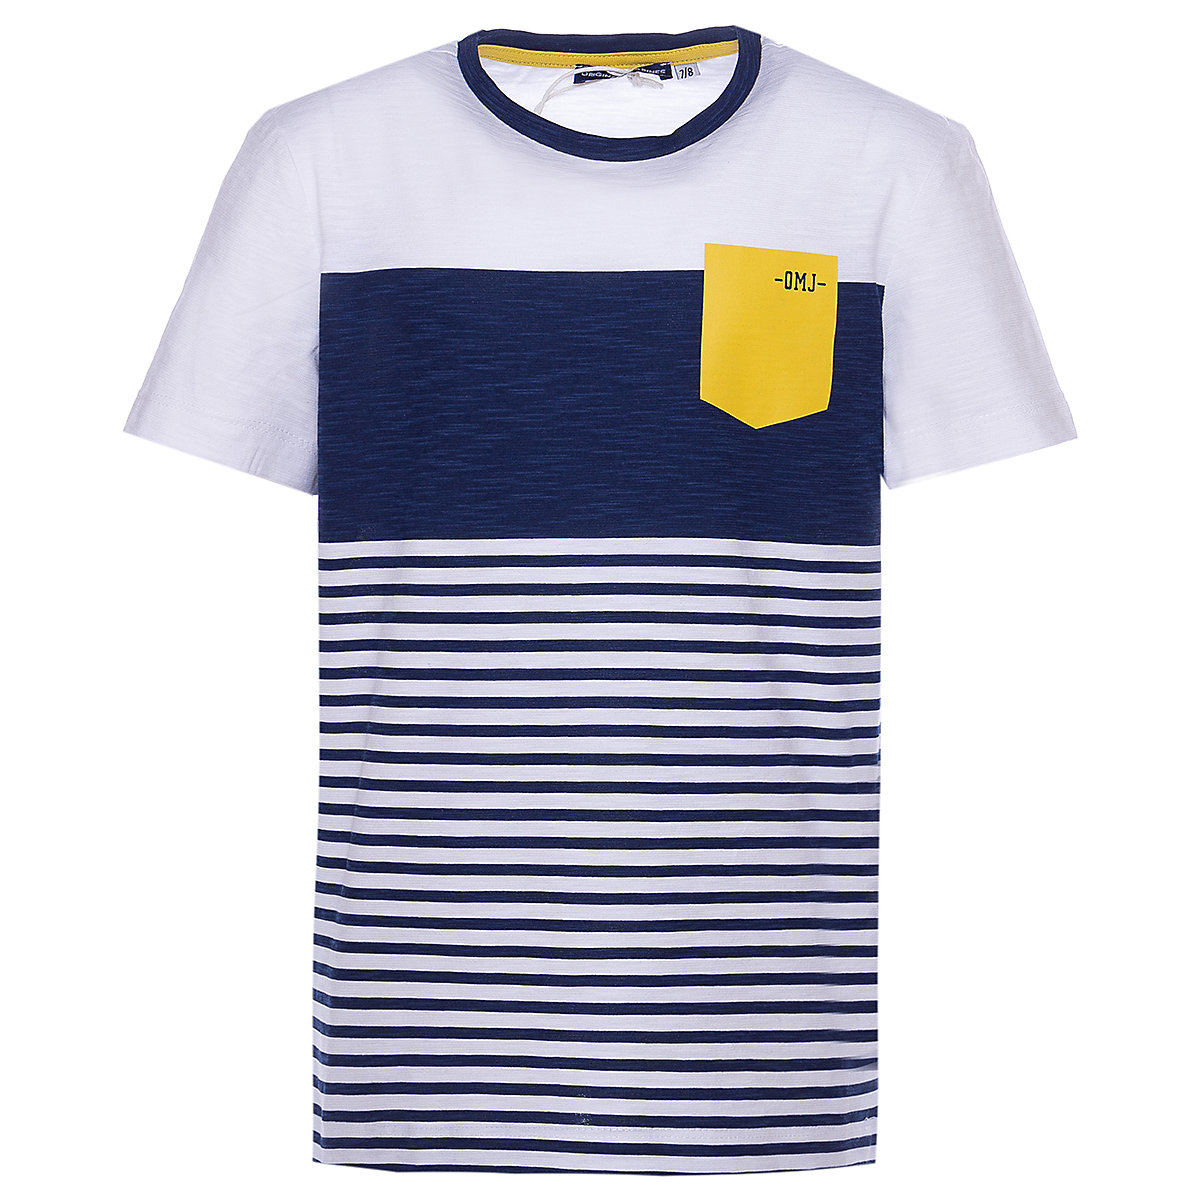 Фото - T-Shirts ORIGINAL MARINES 10819101 Children sClothing T-shirt with short sleeves polo shirt for boys and girls slimming round neck color block striped star pattern long sleeves t shirt